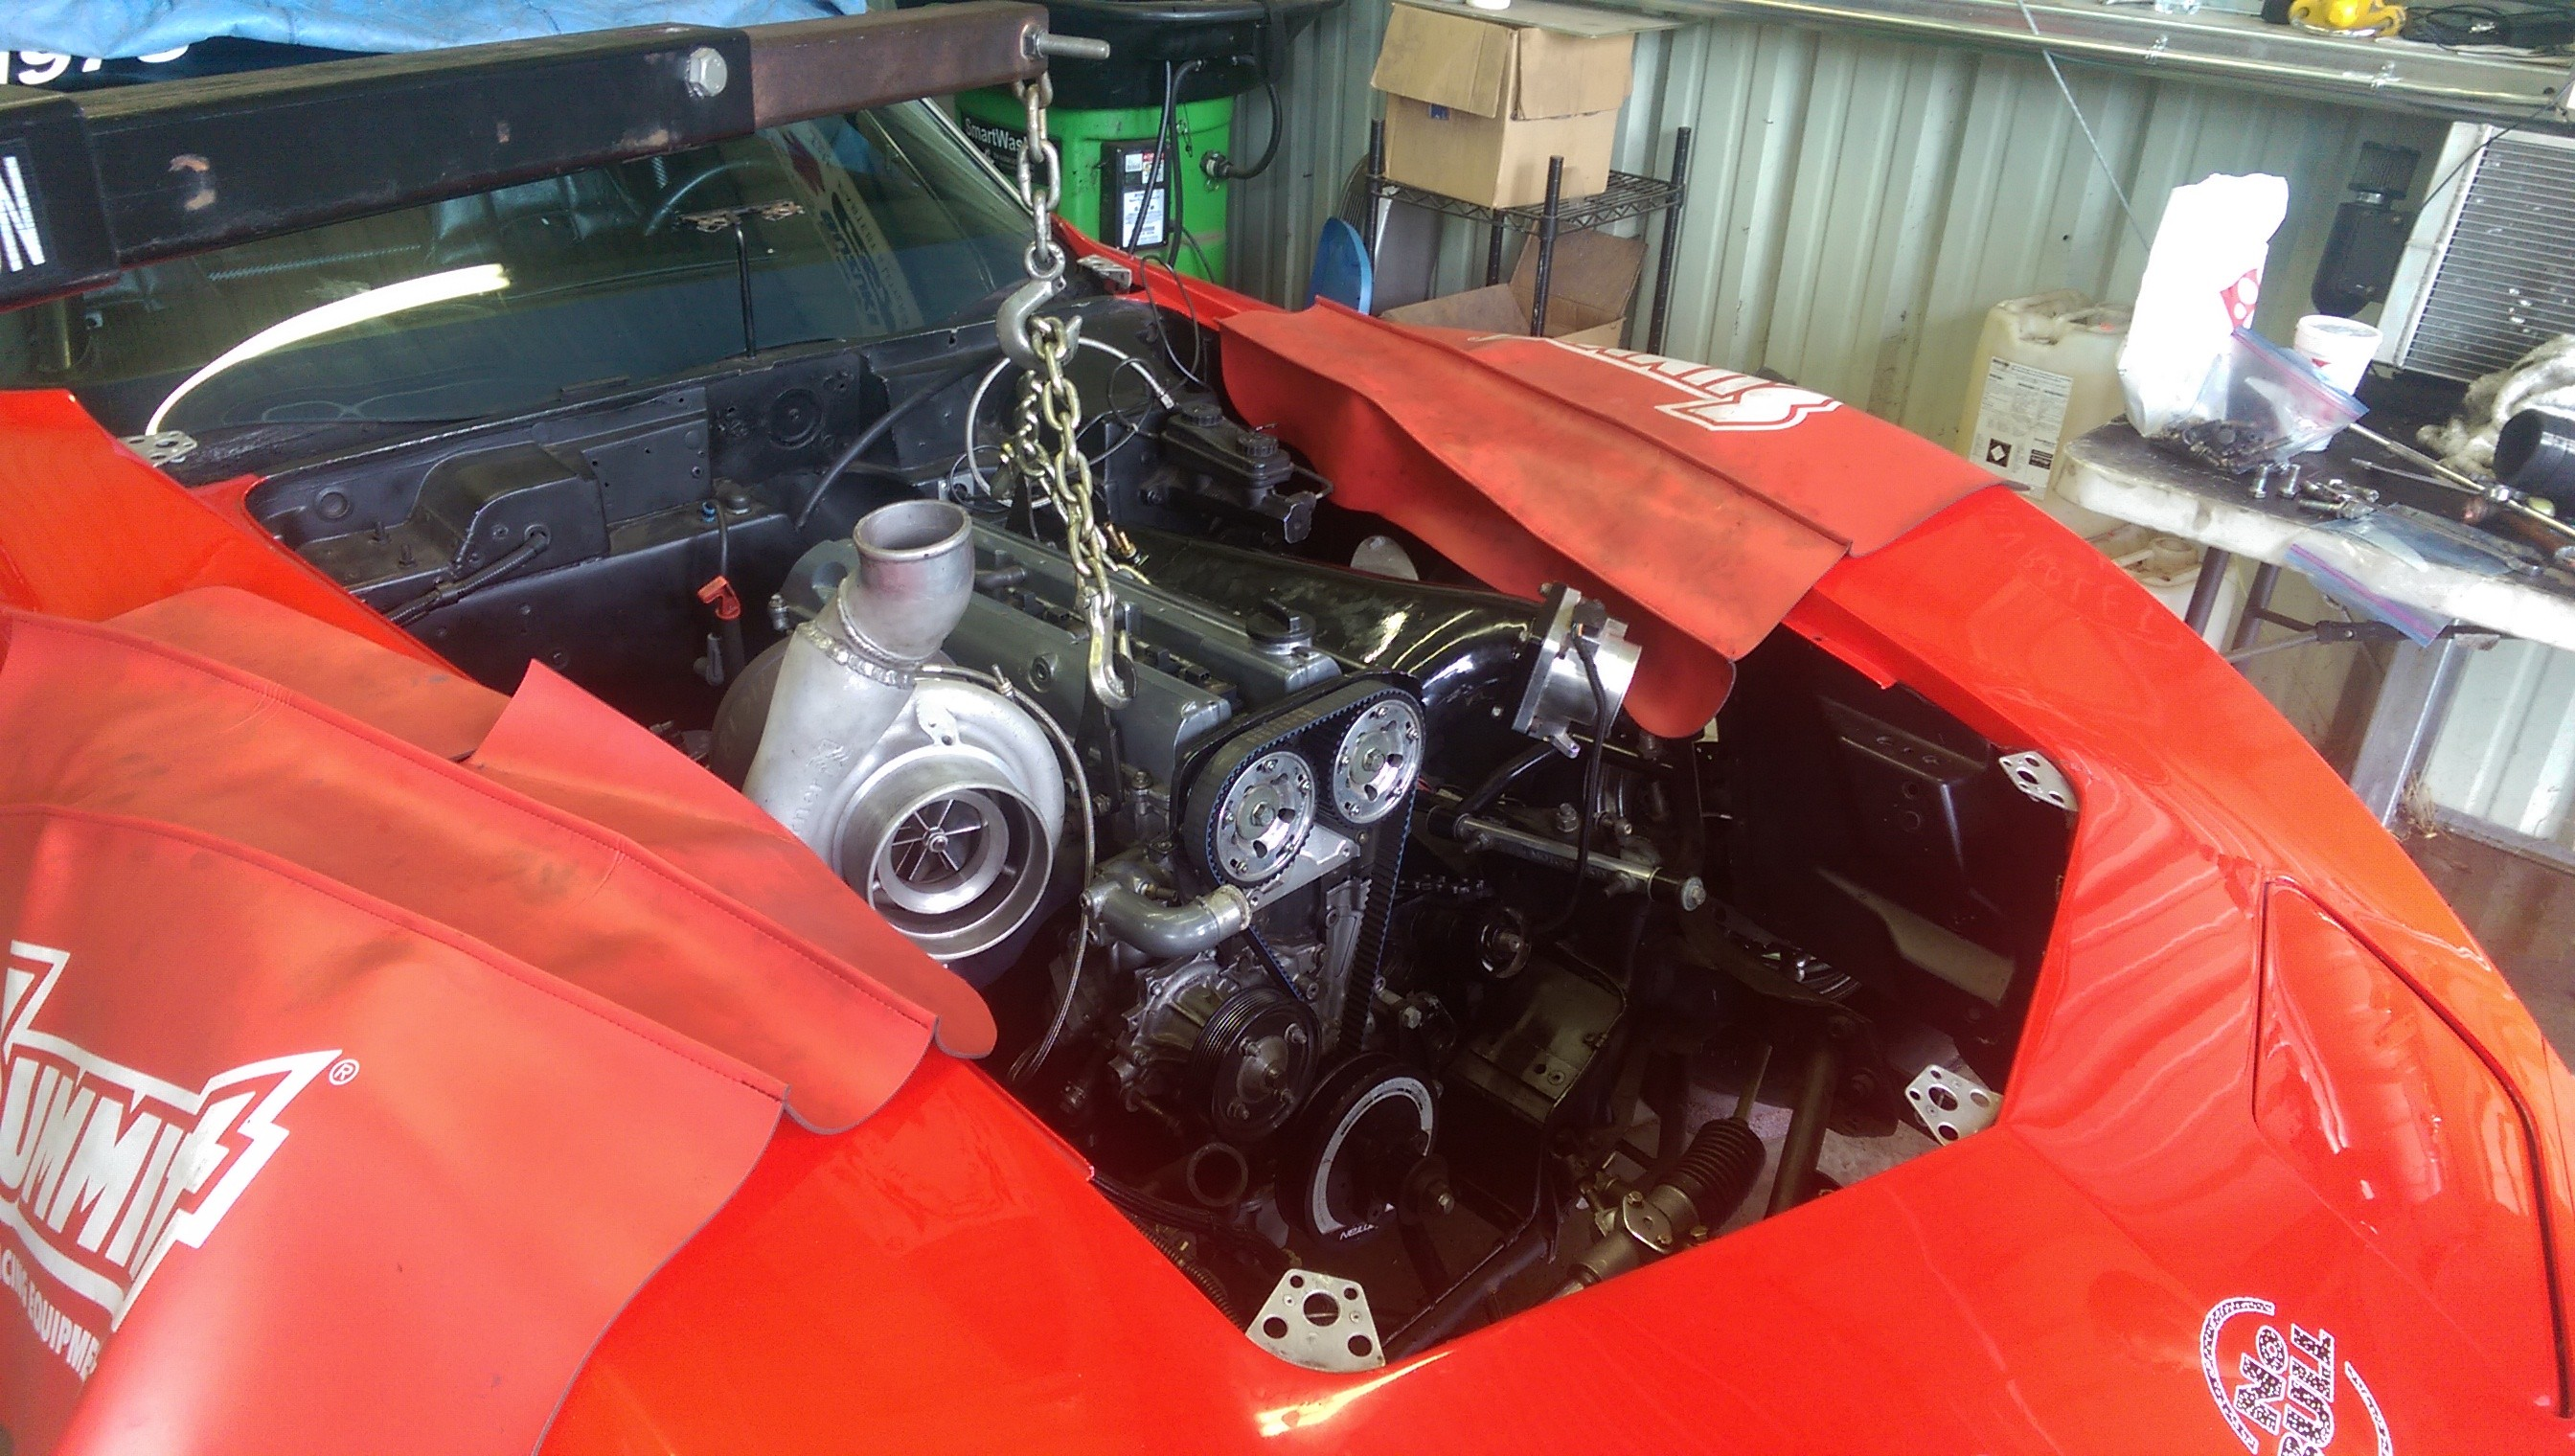 C3 Corvette with 2JZ Engine Trolls Haters with 1,100 WHP and